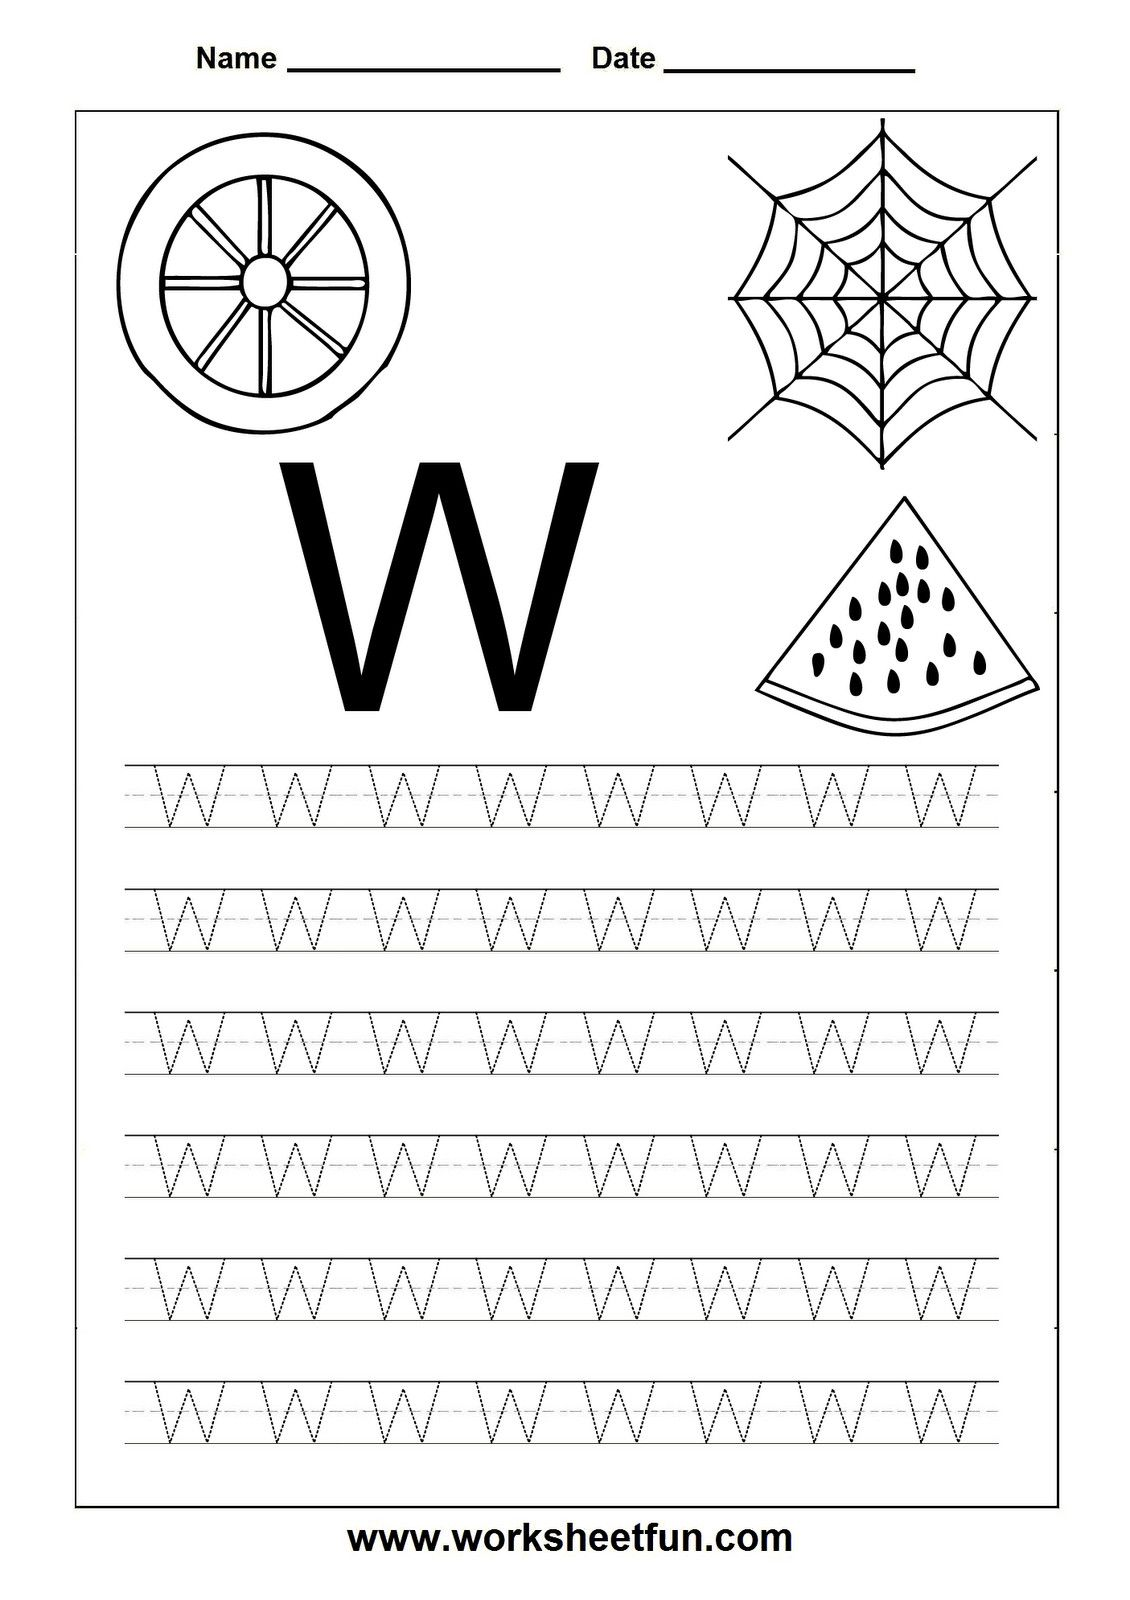 7 Capital Letters Worksheet Free In